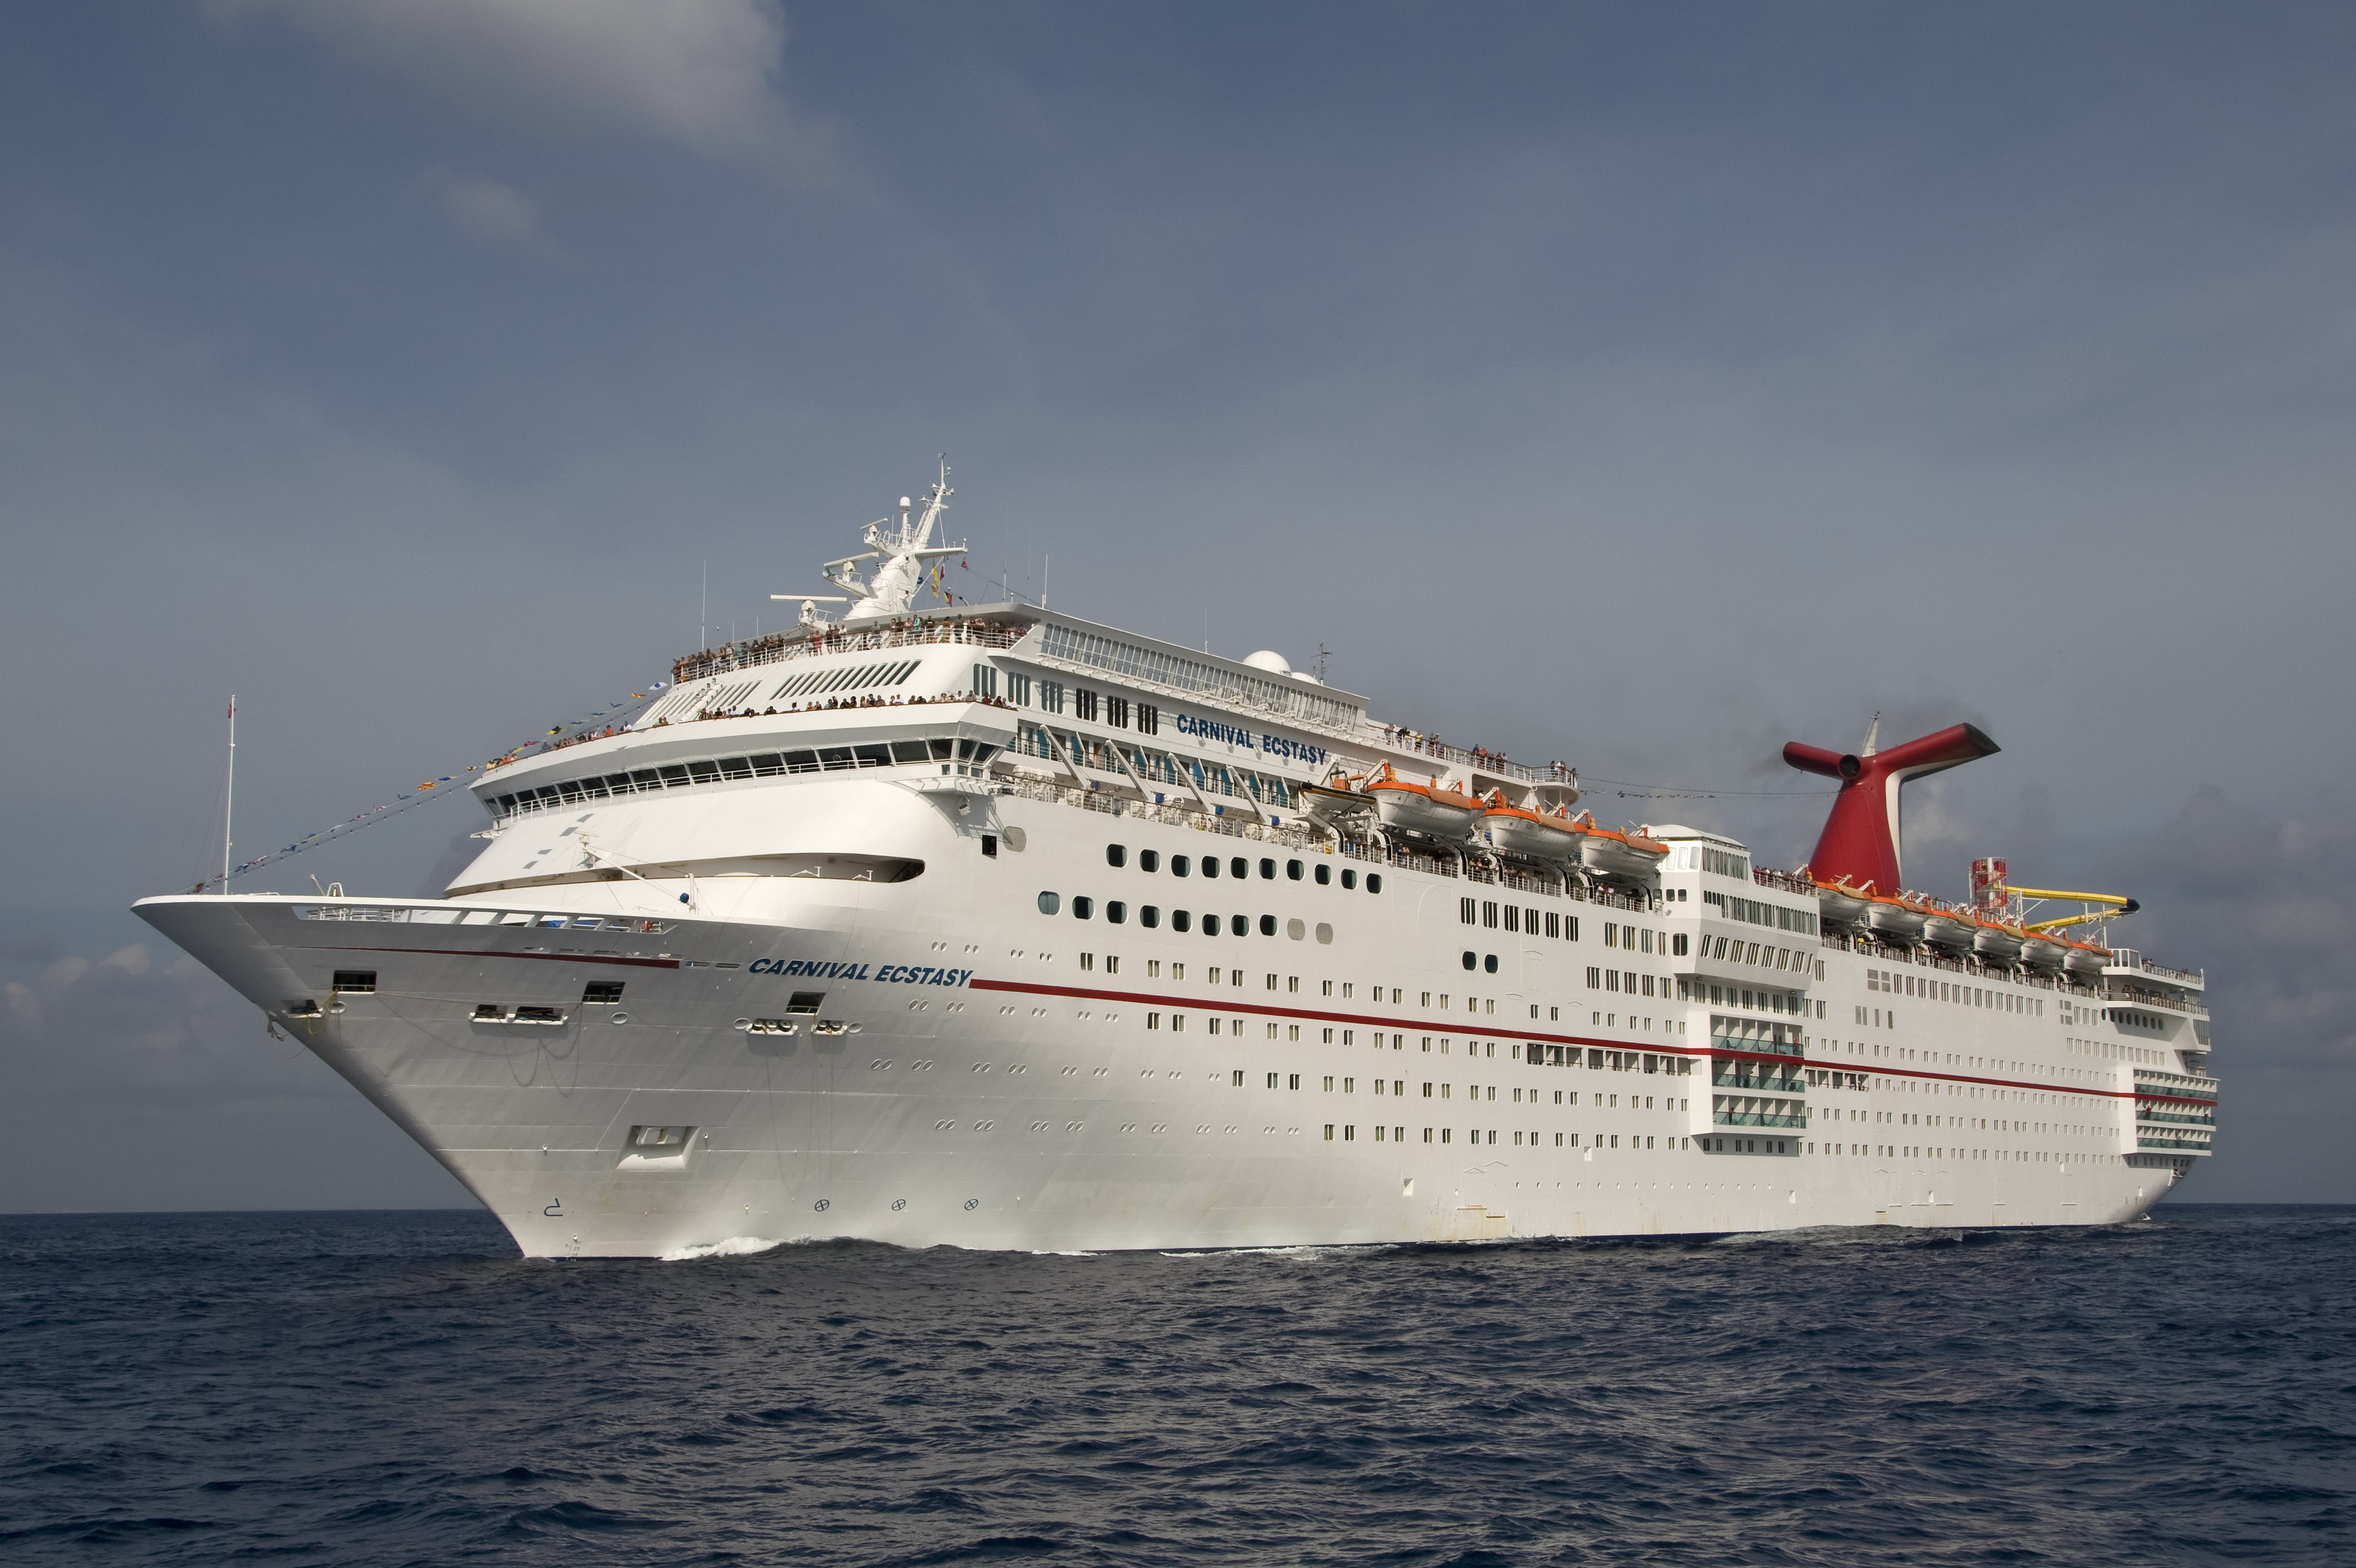 Carnival Ecstasy Undergoes Multi-Million-Dollar Makeover, Emerges With Exciting New Dining And Beverage Concepts